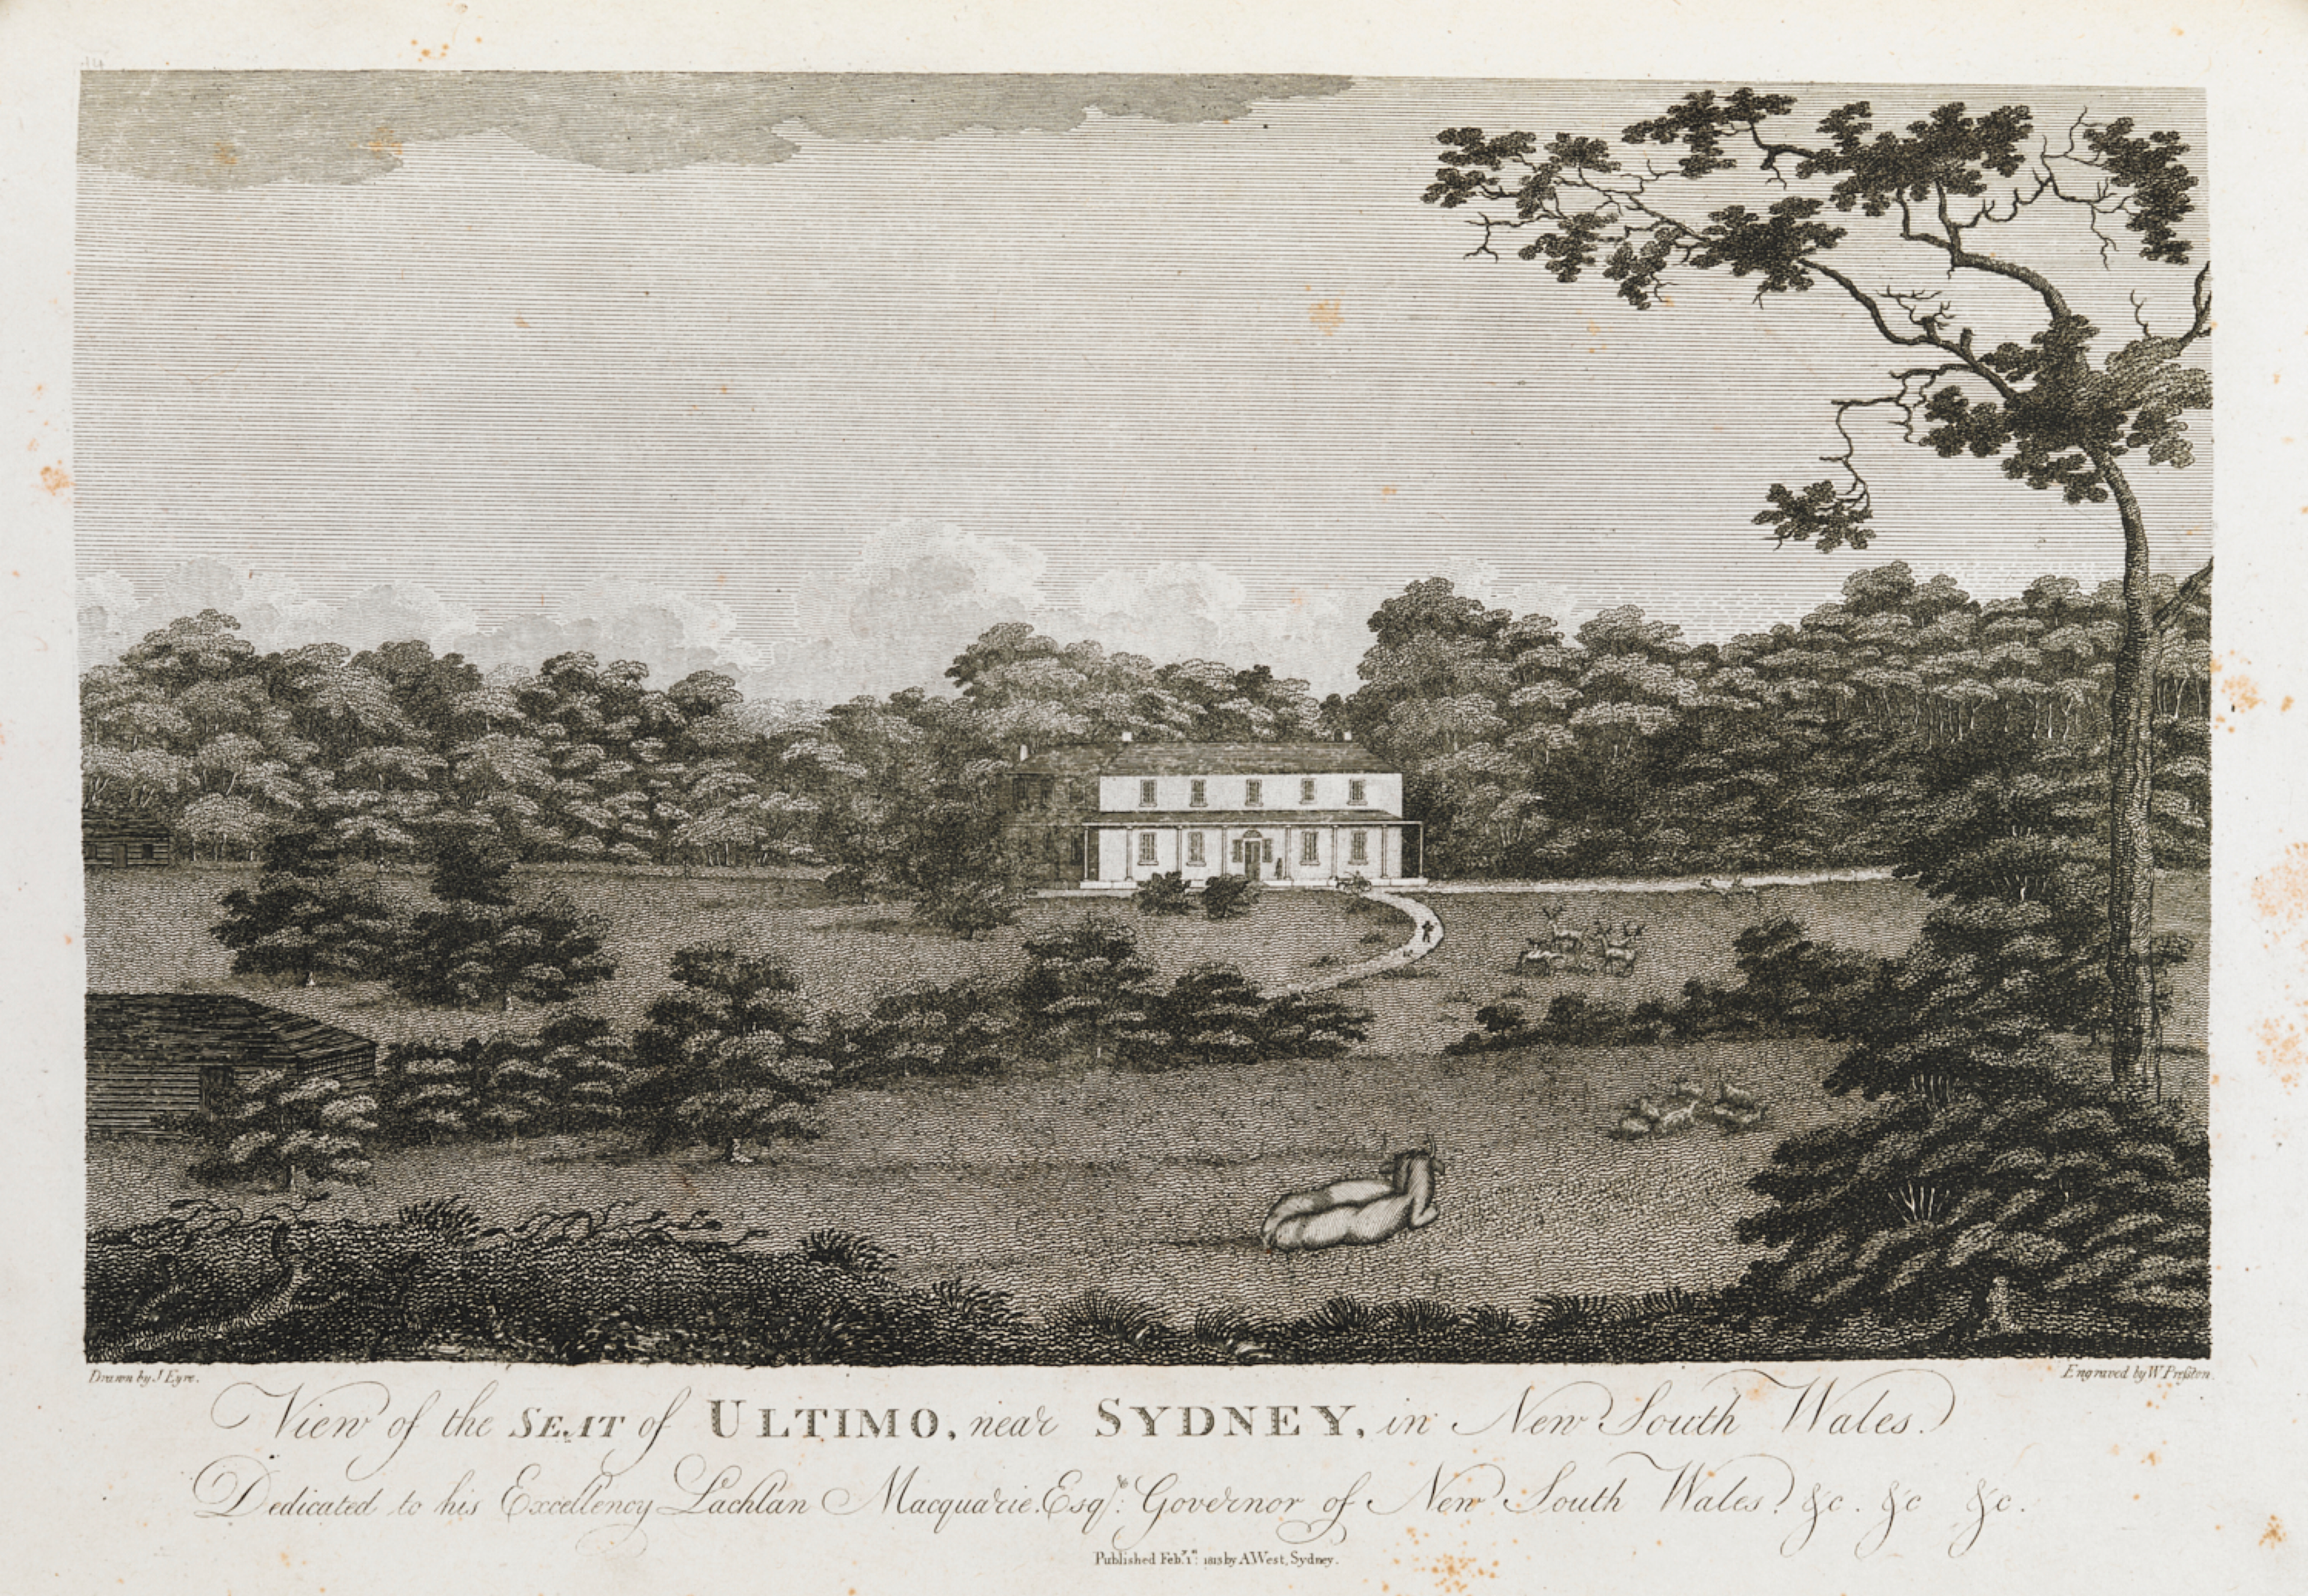 Surgeon John Harris, Ultimo Estate, John Eyre, View of the Seat of Ultimo, Sydney, University of Technology Sydney, St. John's Cemetery Project, Old Parramattans